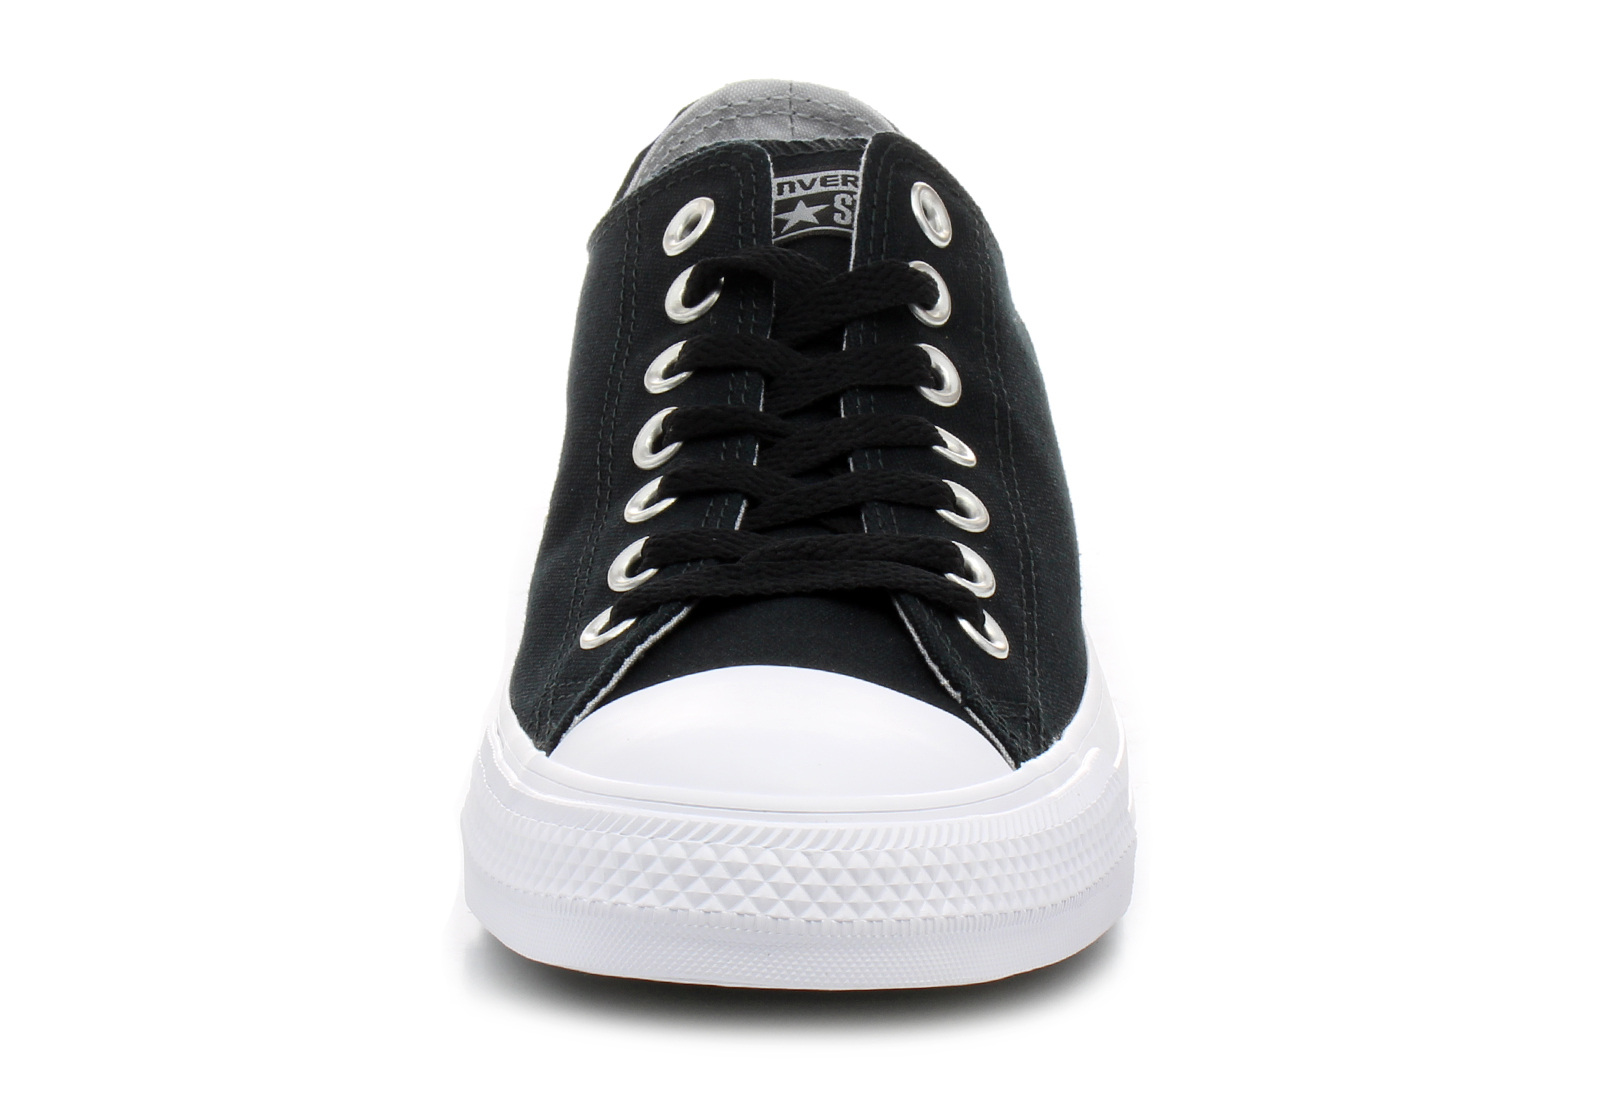 Converse Sneakers Chuck Taylor All Star Tri block Ox 159552C Online shop for sneakers, shoes and boots